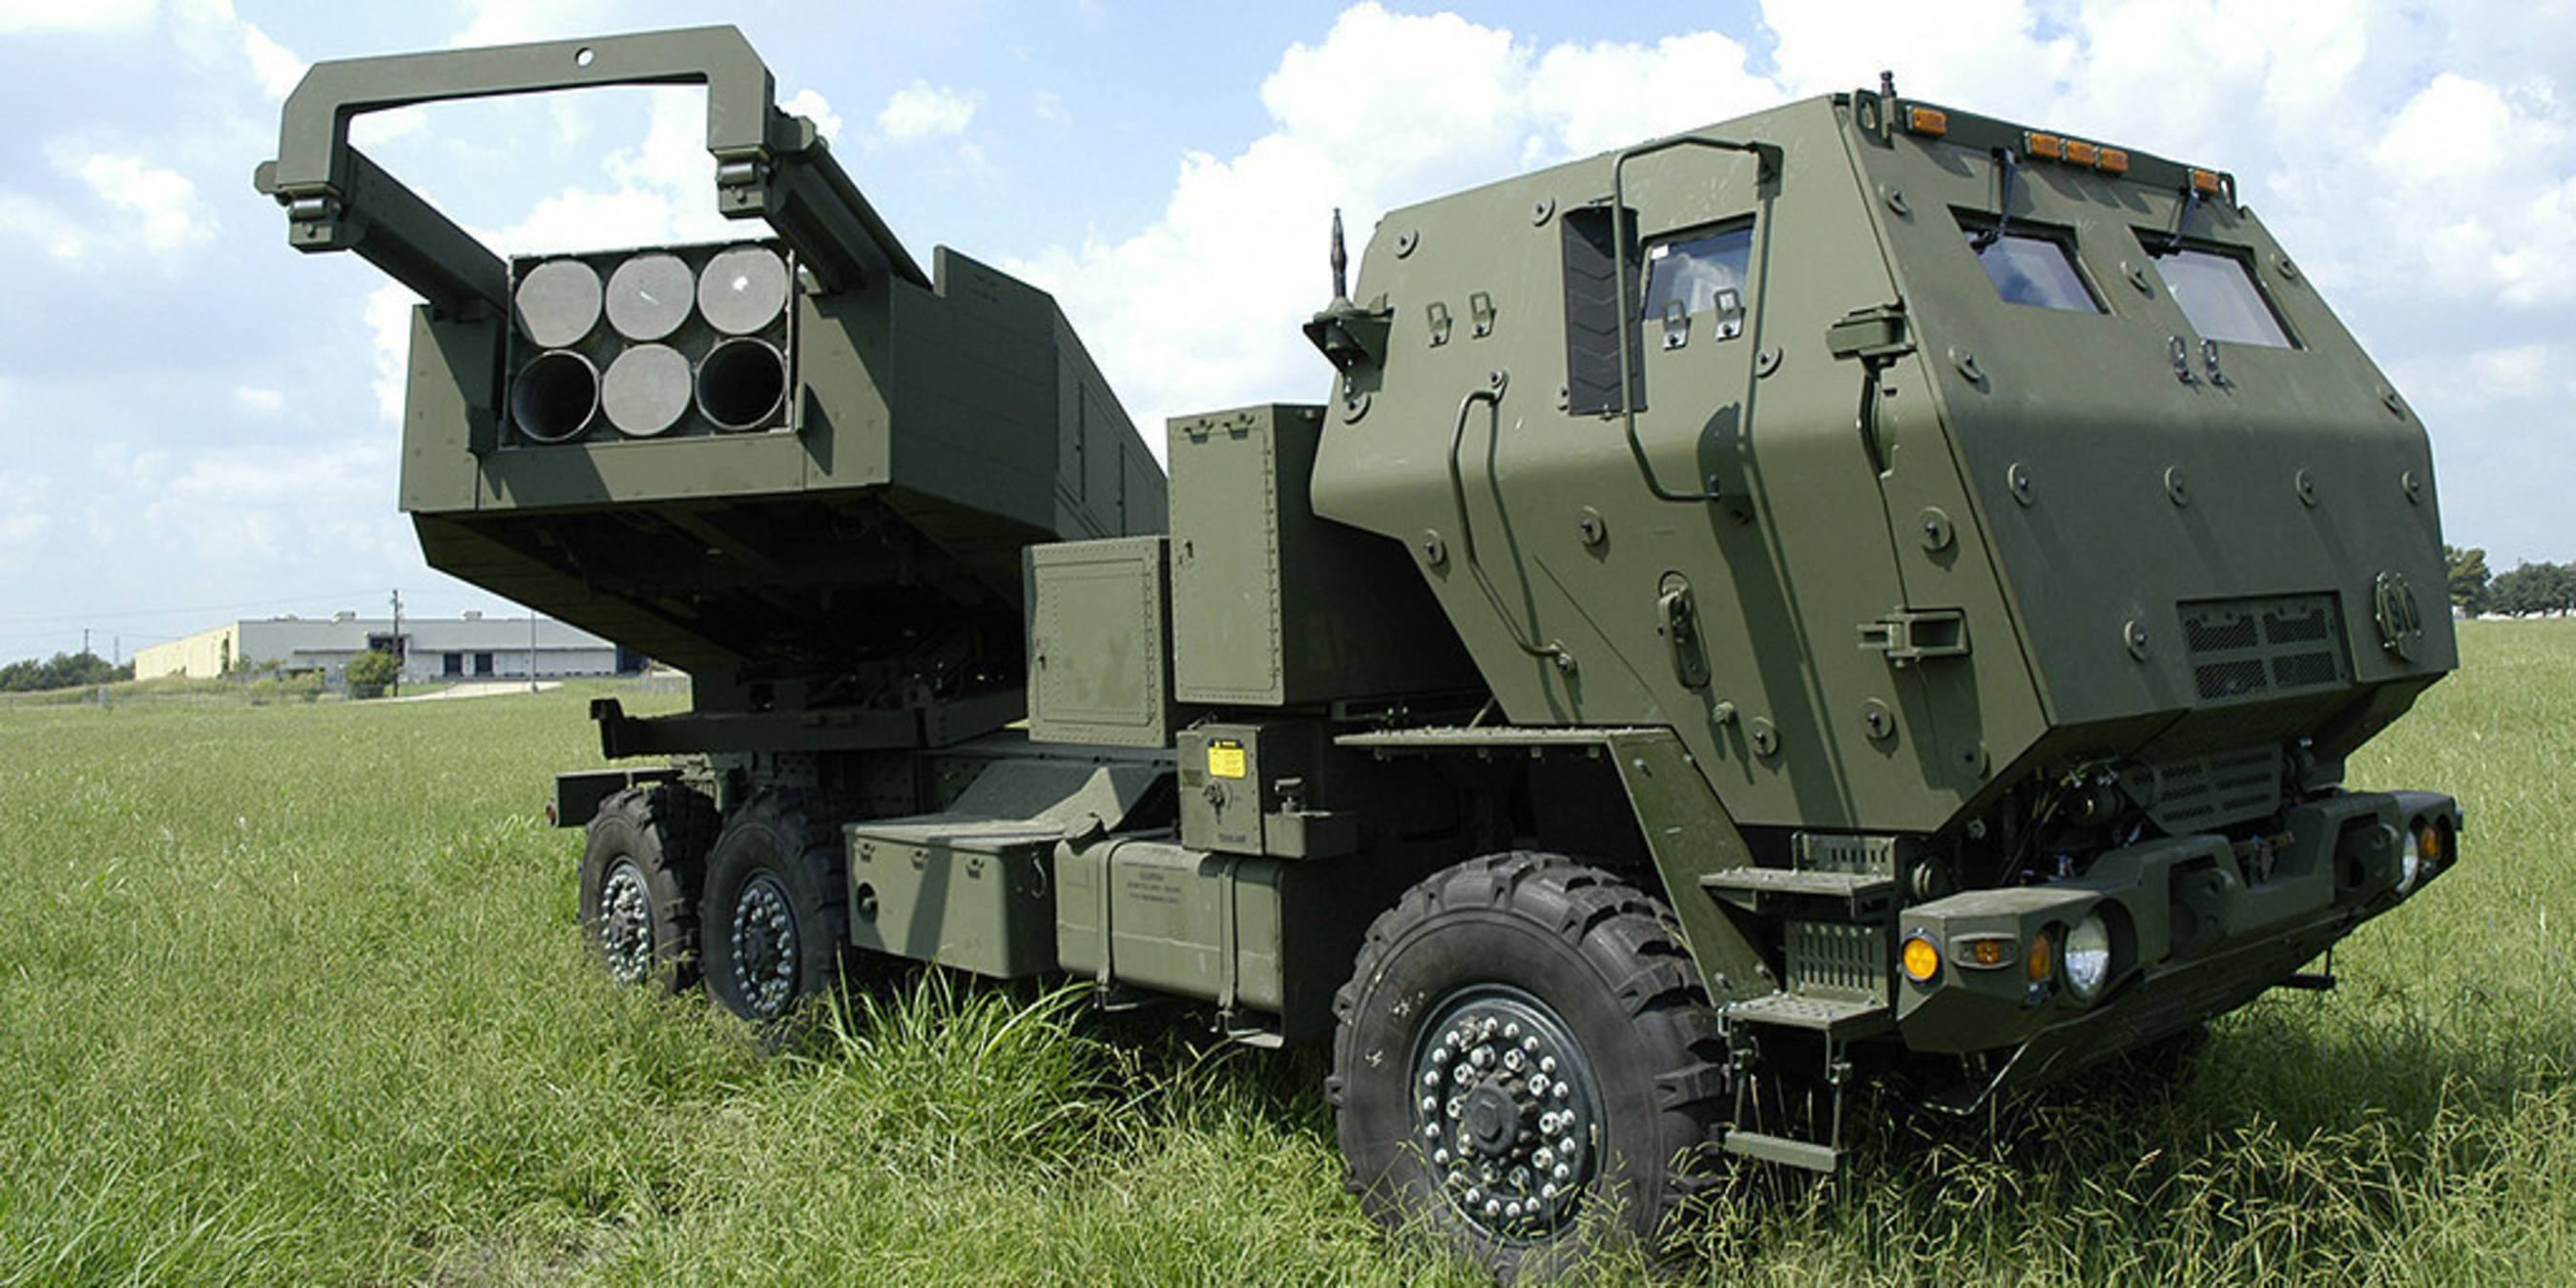 Lockheed Martin High Mobility Artillery Rocket System (HIMARS) is a strategic capability, improving homeland and important asset defense while reducing overall mission costs.